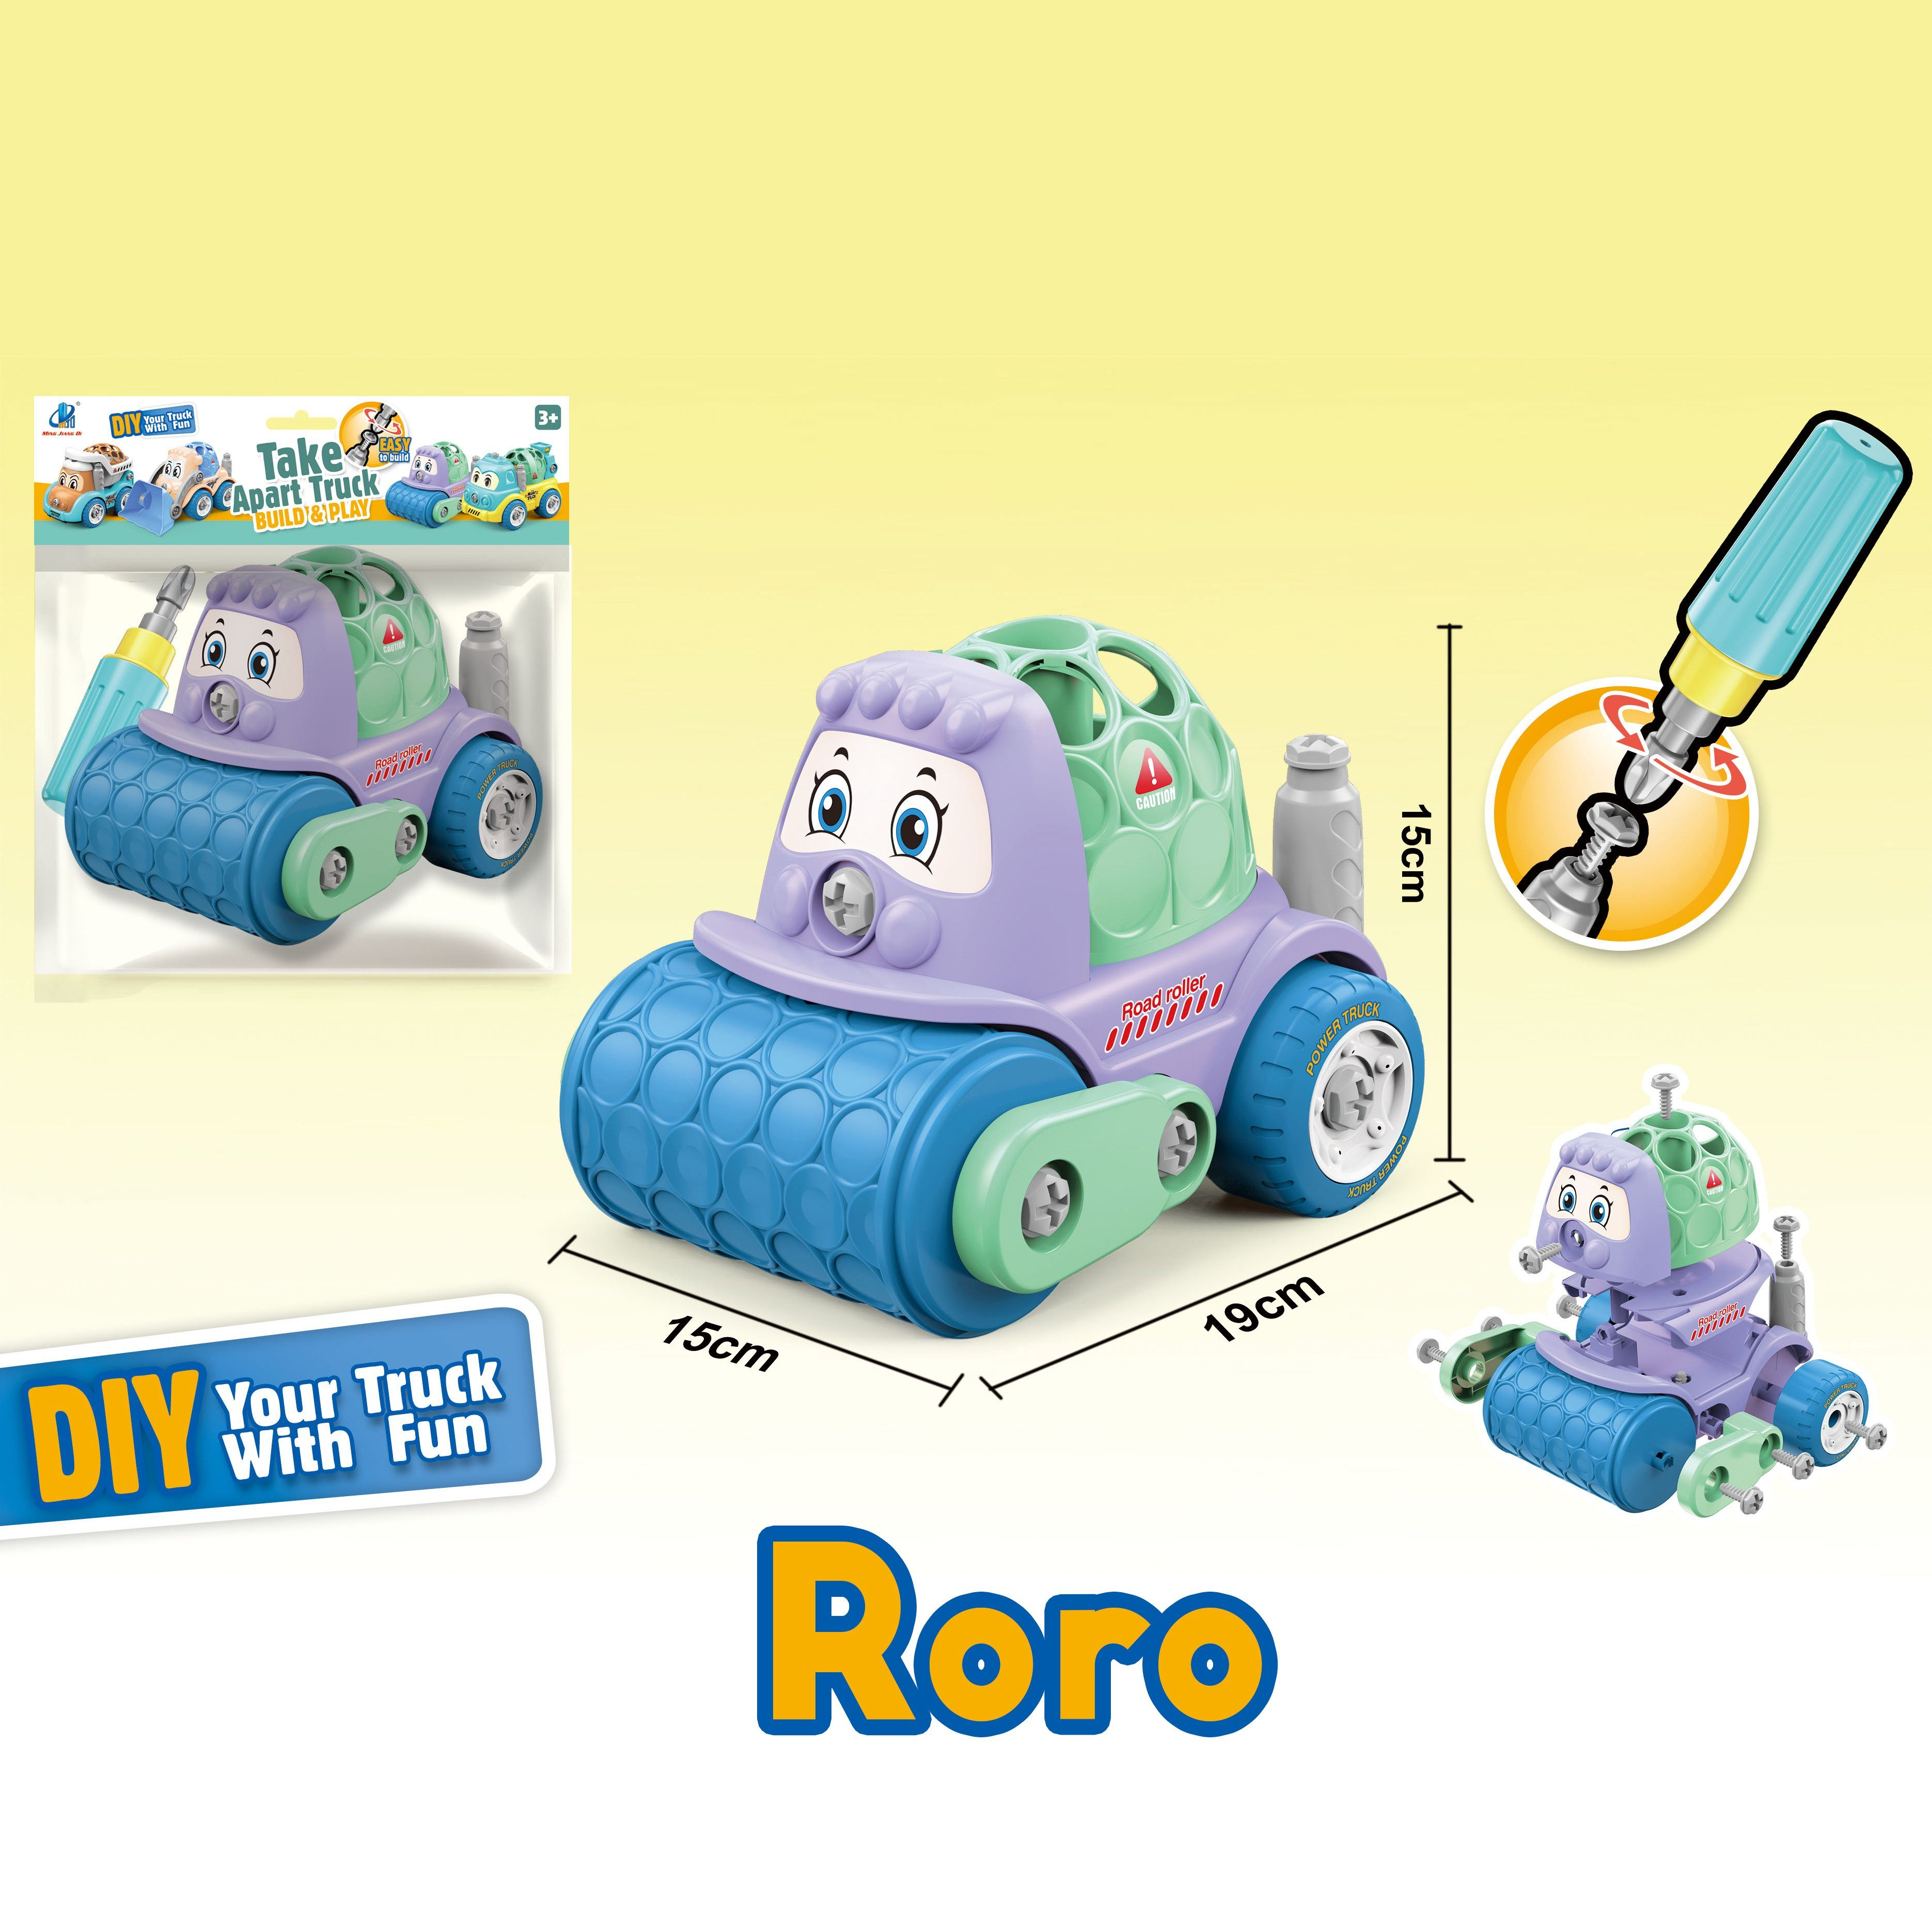 Roller Truck - assemble construction truck toys with plastic screws and screwdriver